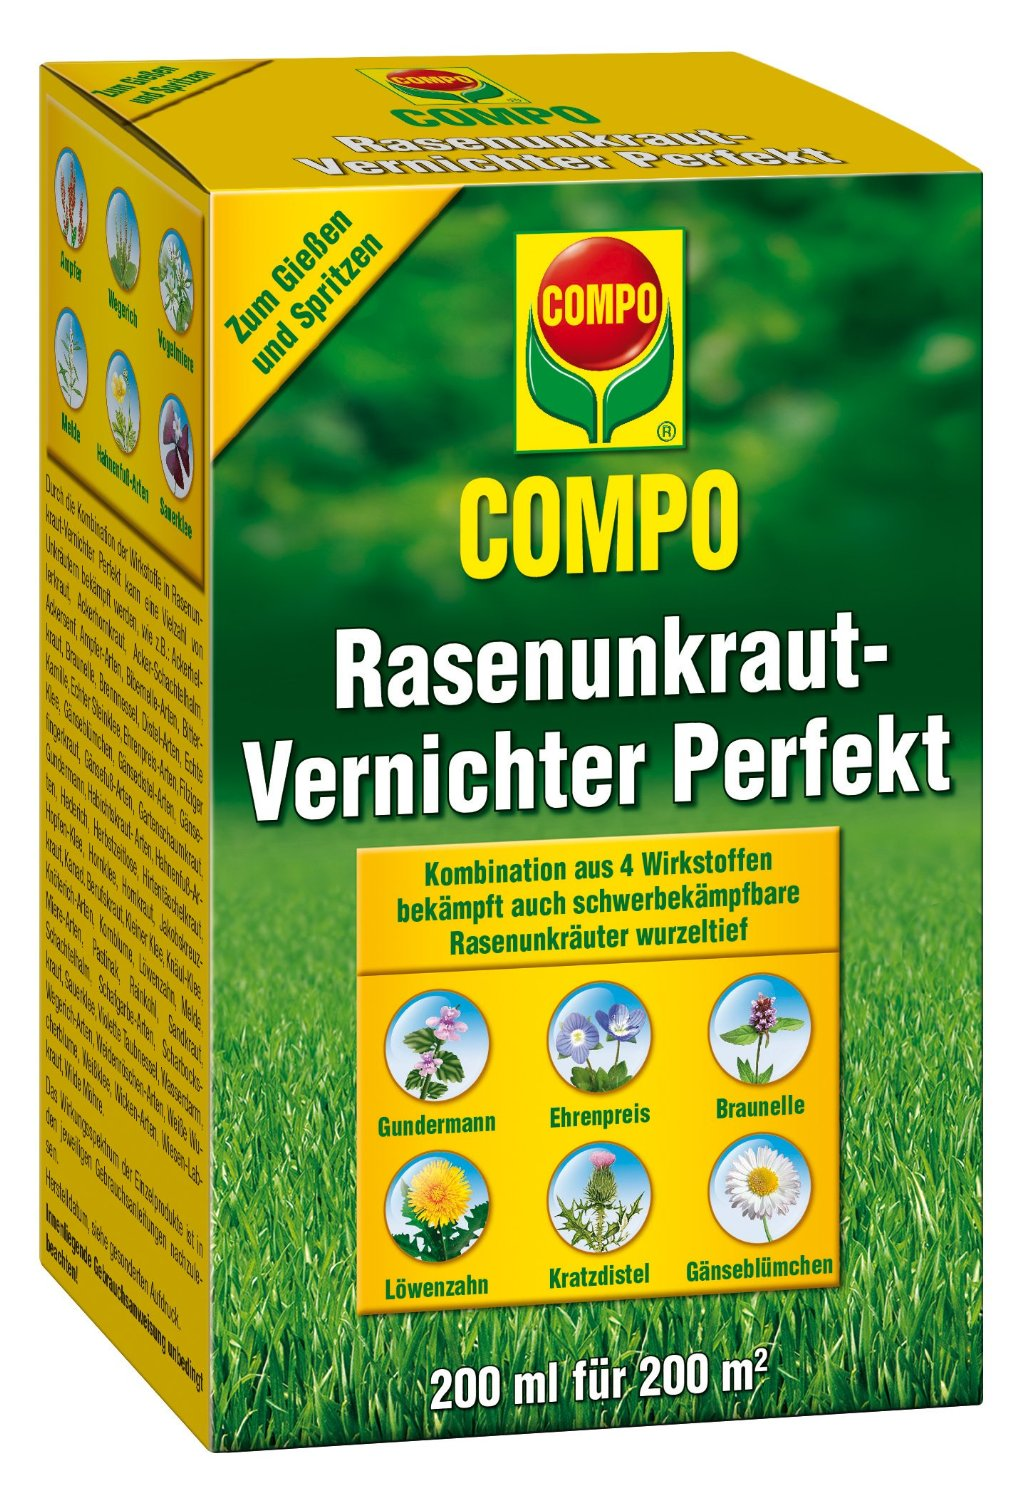 Photo of Compo 25389 Rasenunkraut-Vernichter Perfekt Test